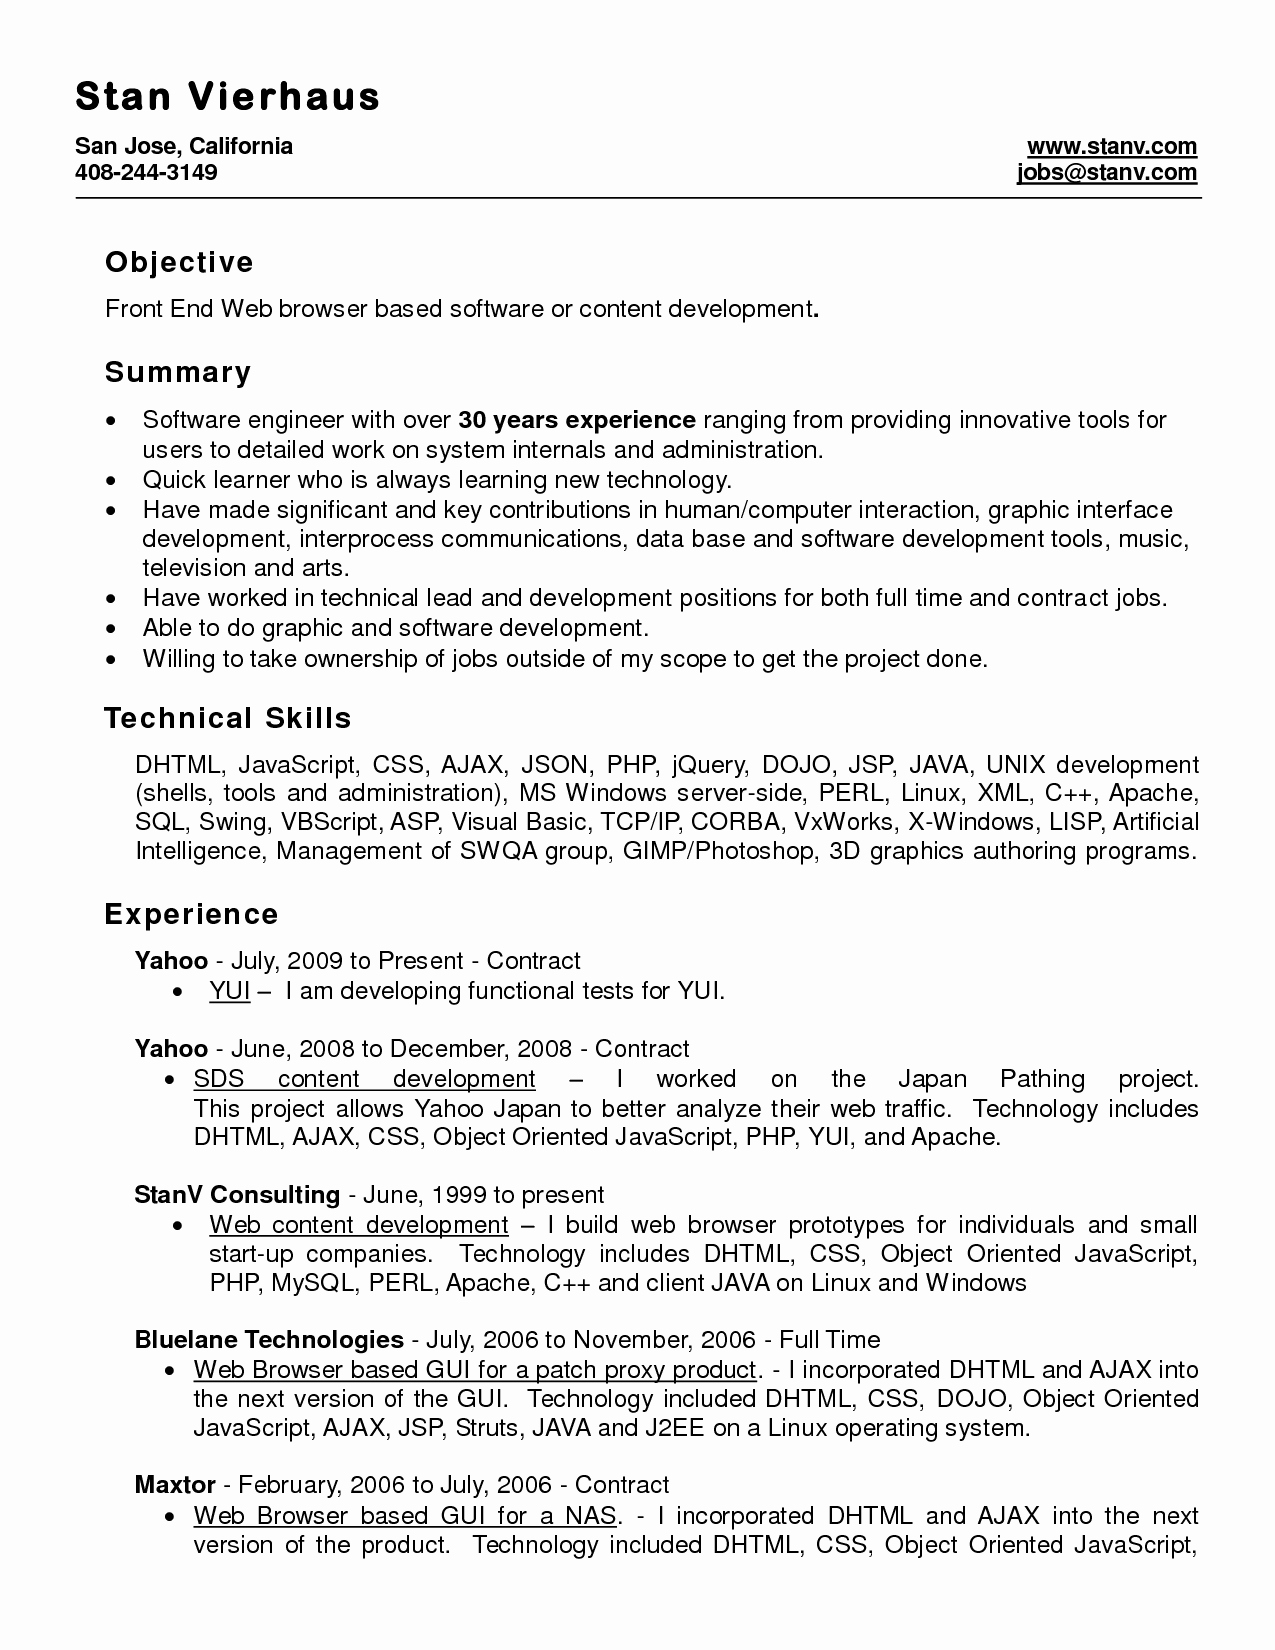 Microsoft Word Resume Samples Essay Ms format